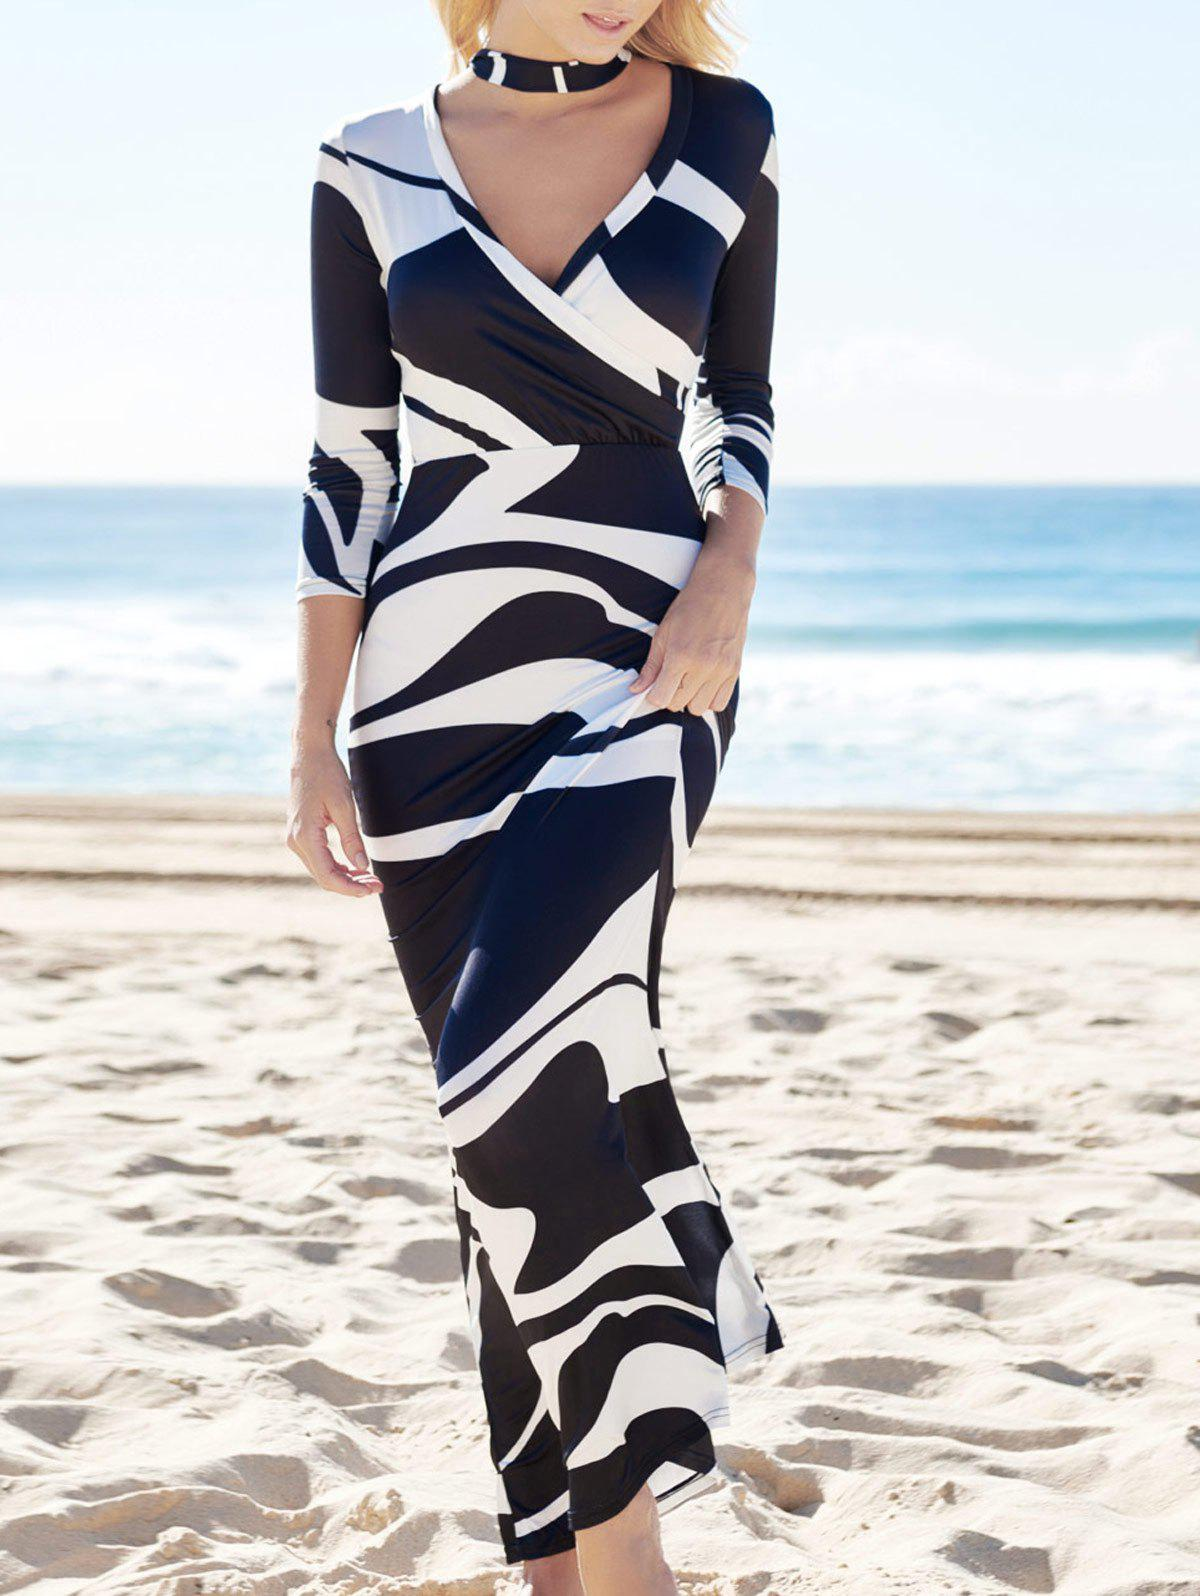 Attractive High Waist Plunging Neck Abstract Printed Women Maxi Dress - WHITE/BLACK XL